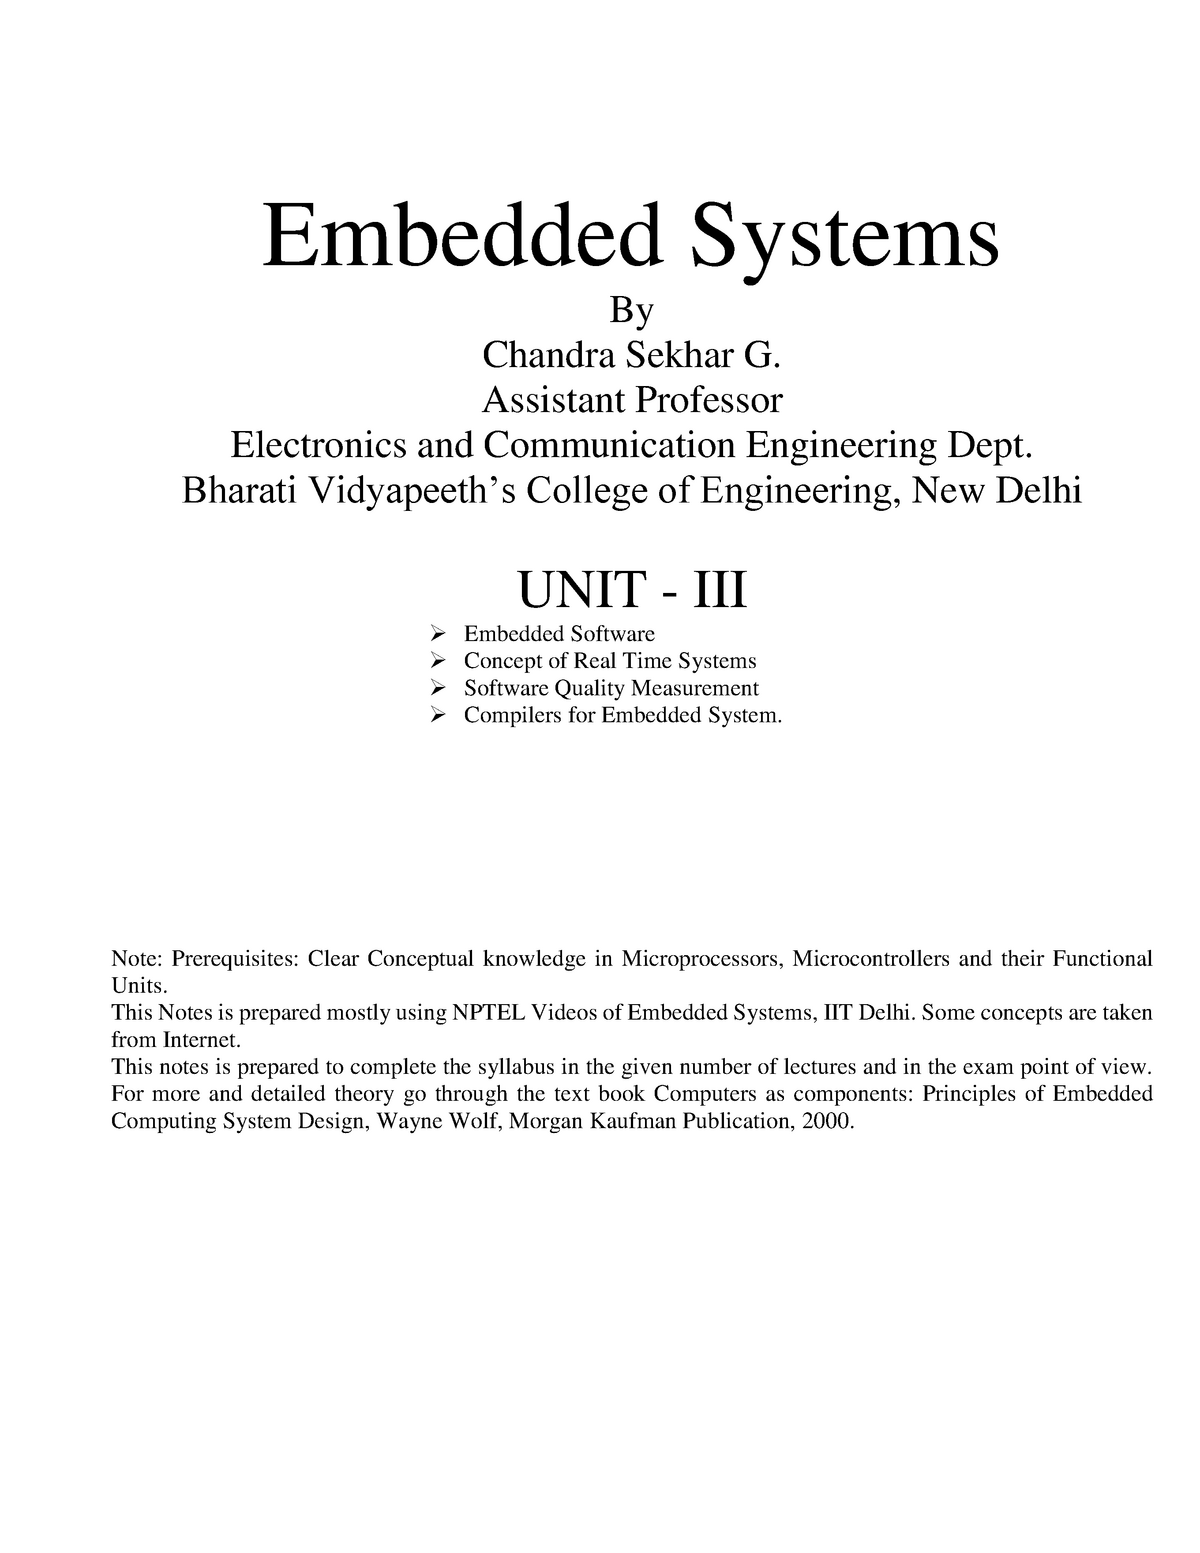 Embedded Systems Notes - Unit - 3 - ETEC 401: Embedded system - StuDocu